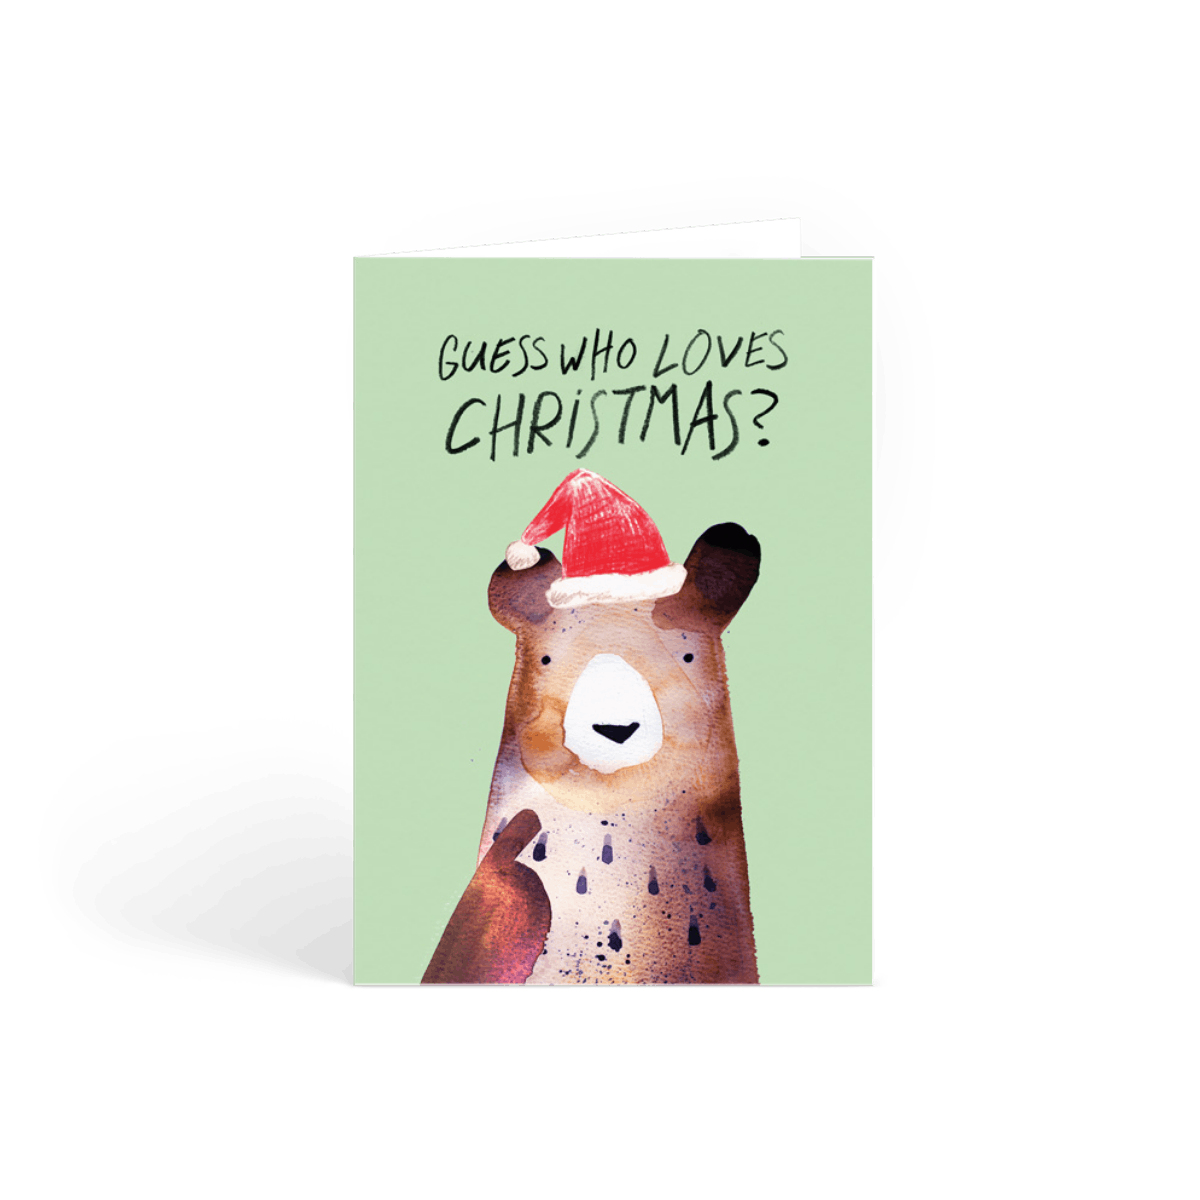 Https%3a%2f%2fwww.papier.com%2fproduct image%2f24019%2f2%2fwho loves christmas 6009 avant 1541158896.png?ixlib=rb 1.1